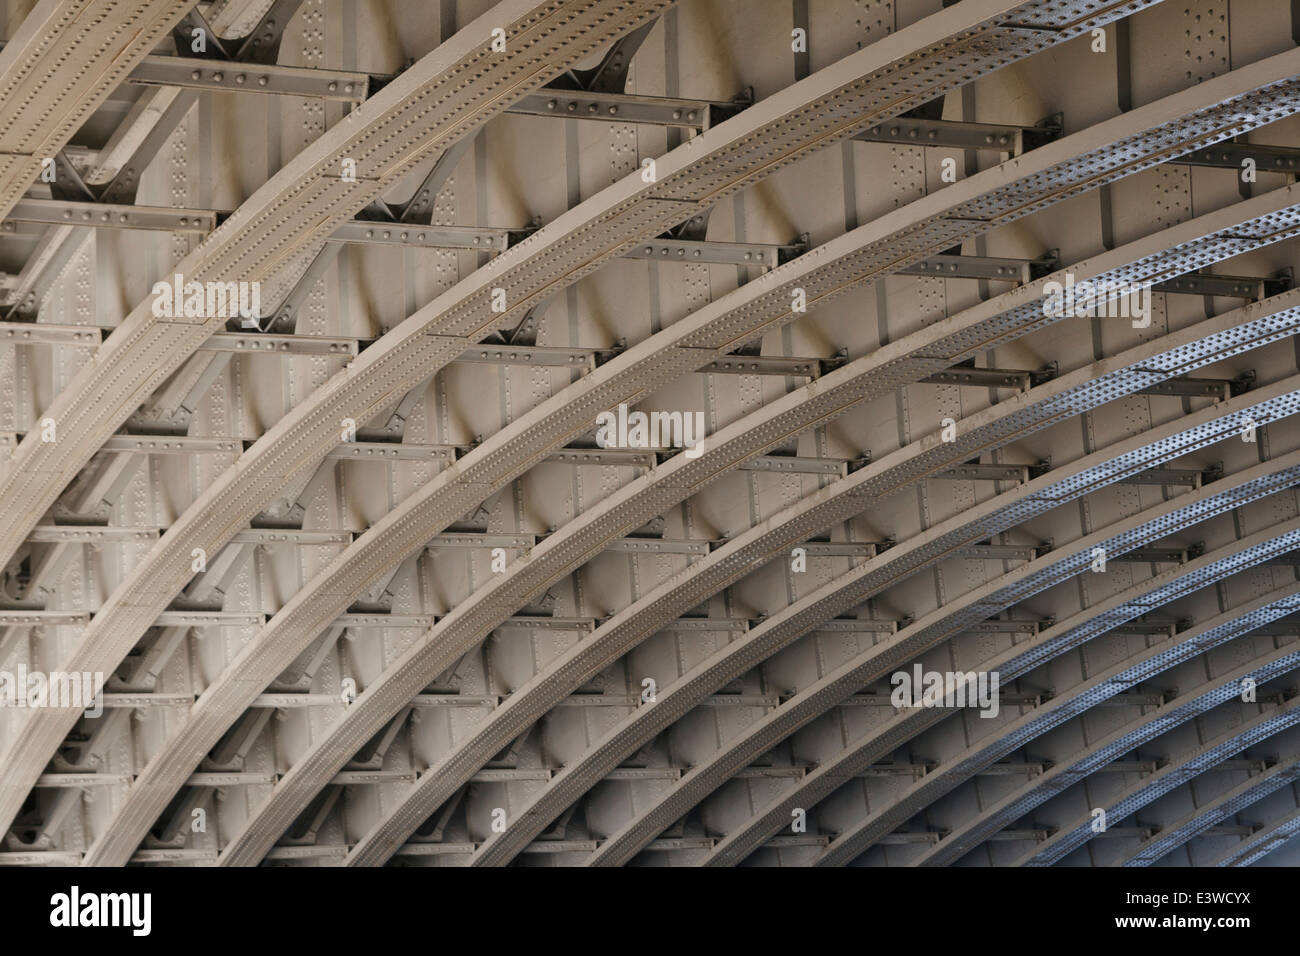 Steel arches underneath Blackfriars Bridge, London, rivets clearly seen. - Stock Image